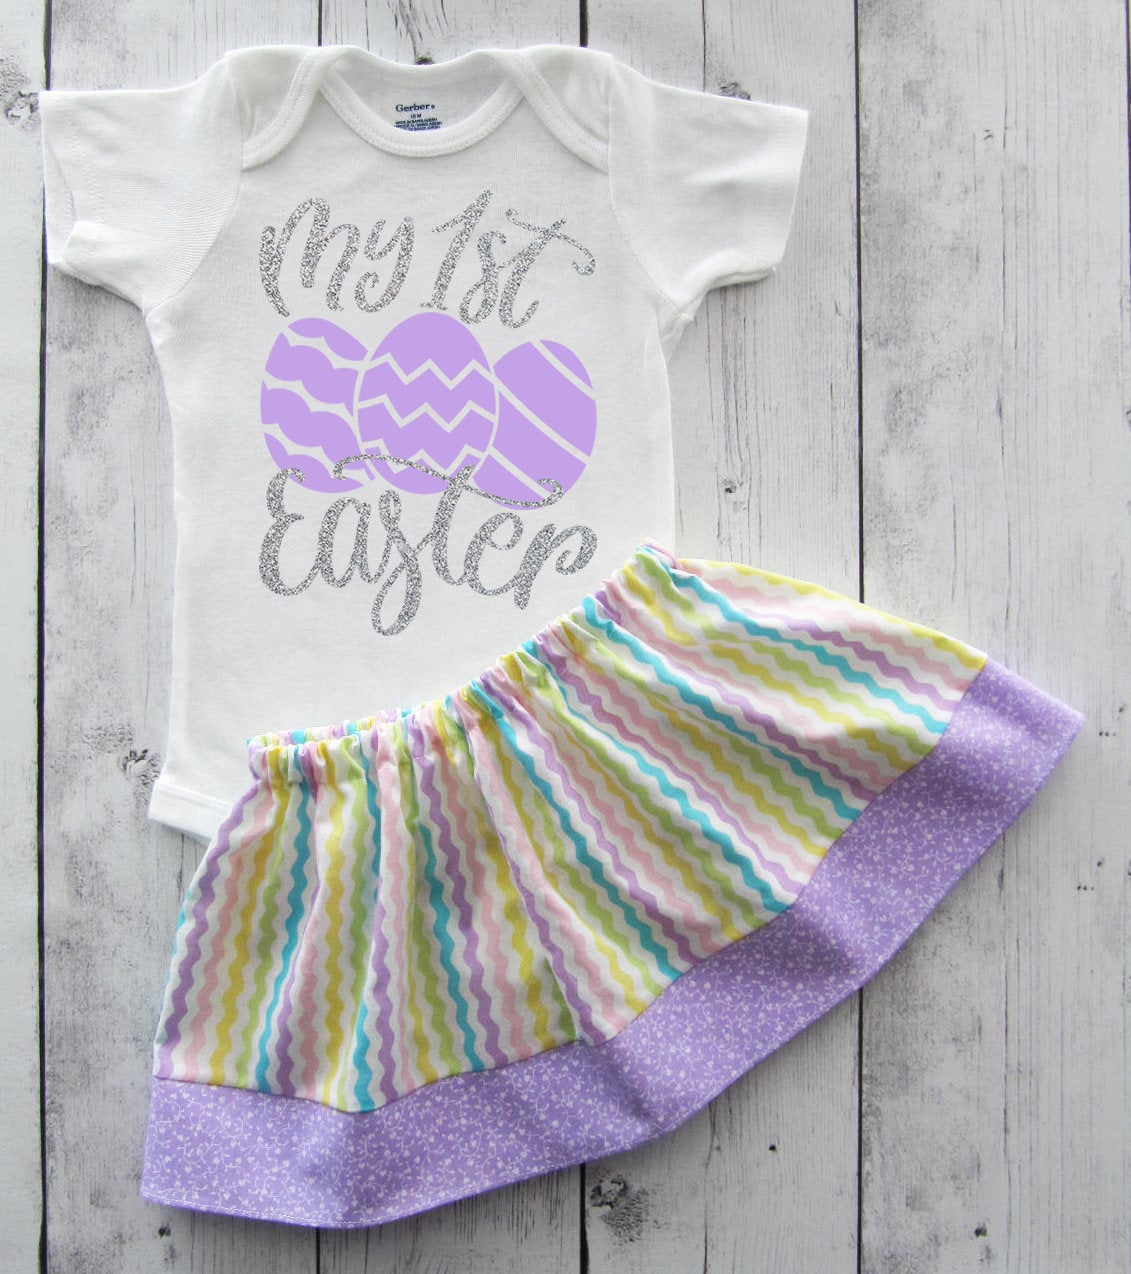 My First Easter Dress in lavender and silver - baby girl dress, first easter outfit, baby girl dress, purple, lavender, my first easter